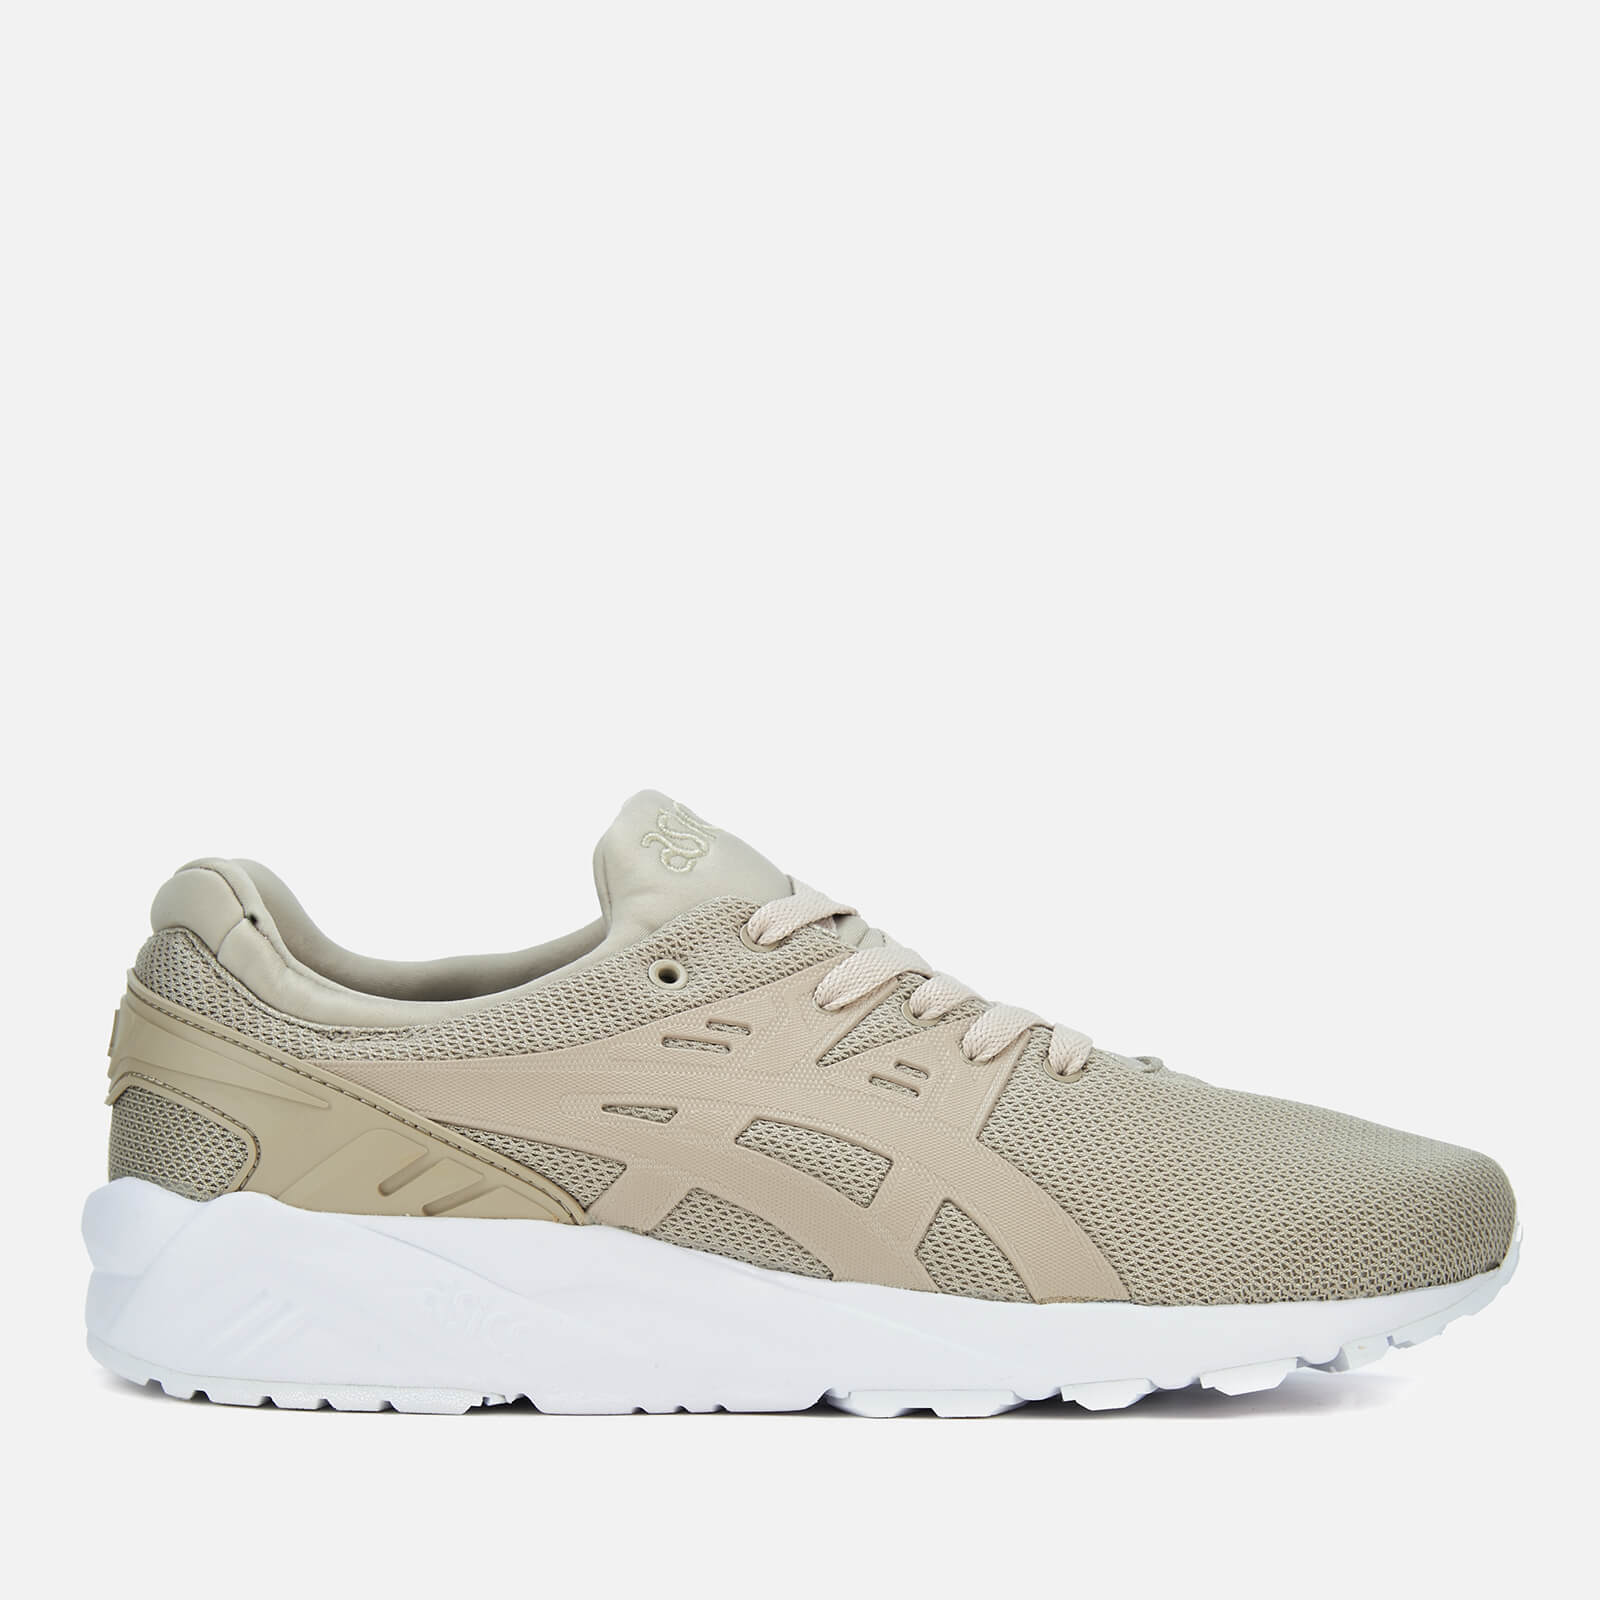 bd0afa9ec Asics Lifestyle Men s Gel-Kayano Evo Trainers - Feather Grey - Free UK  Delivery over £50